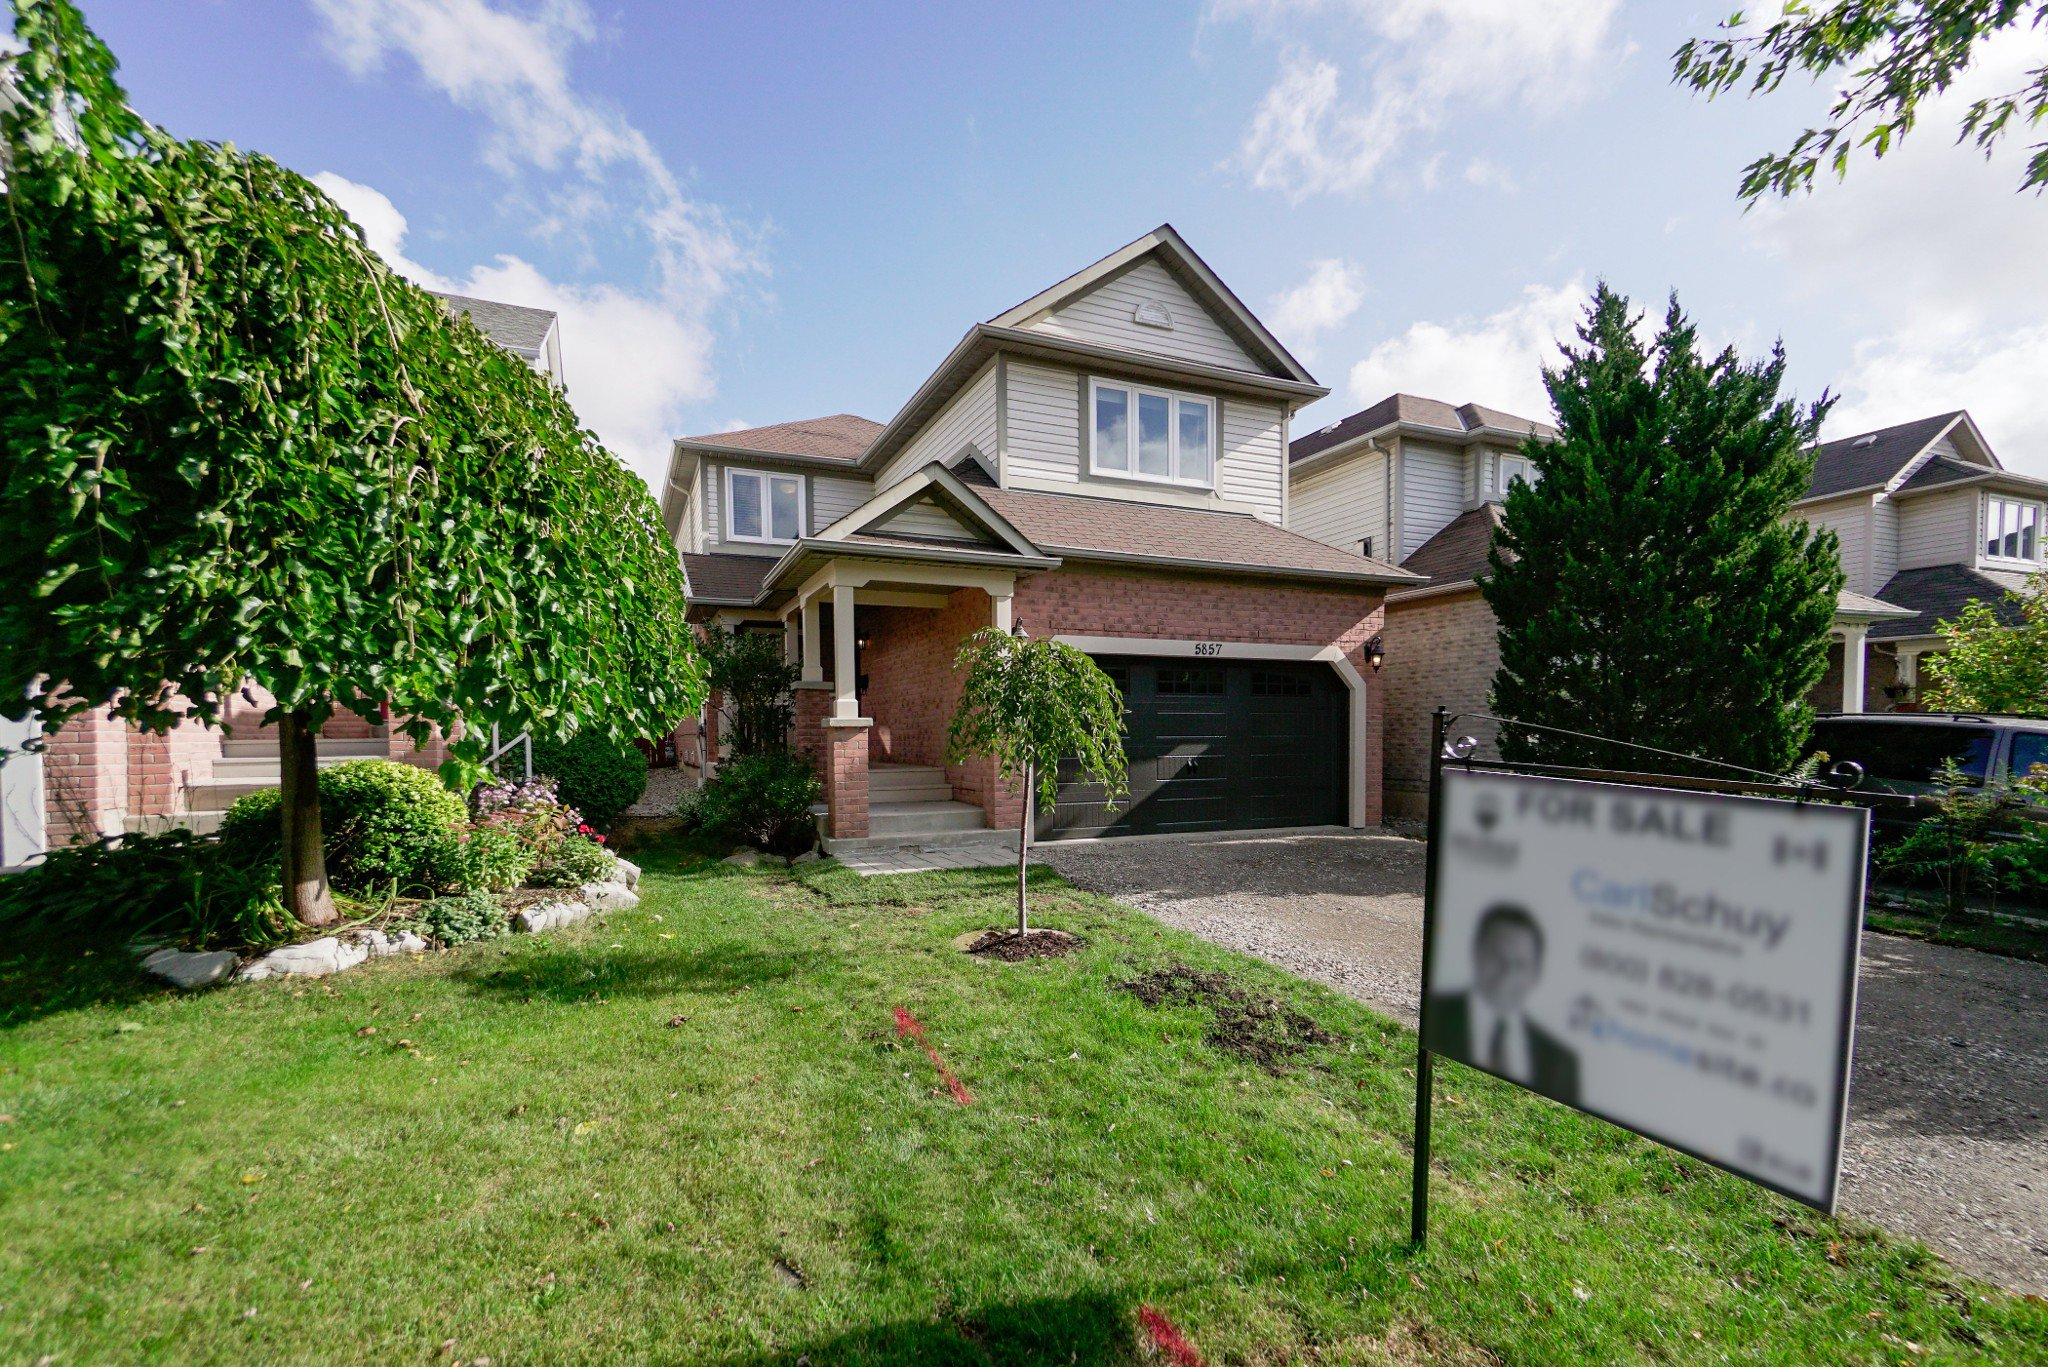 Main Photo: 5857 Dalebrook Crescent in Mississauga: Central Erin Mills House (2-Storey) for sale : MLS®# W4607333